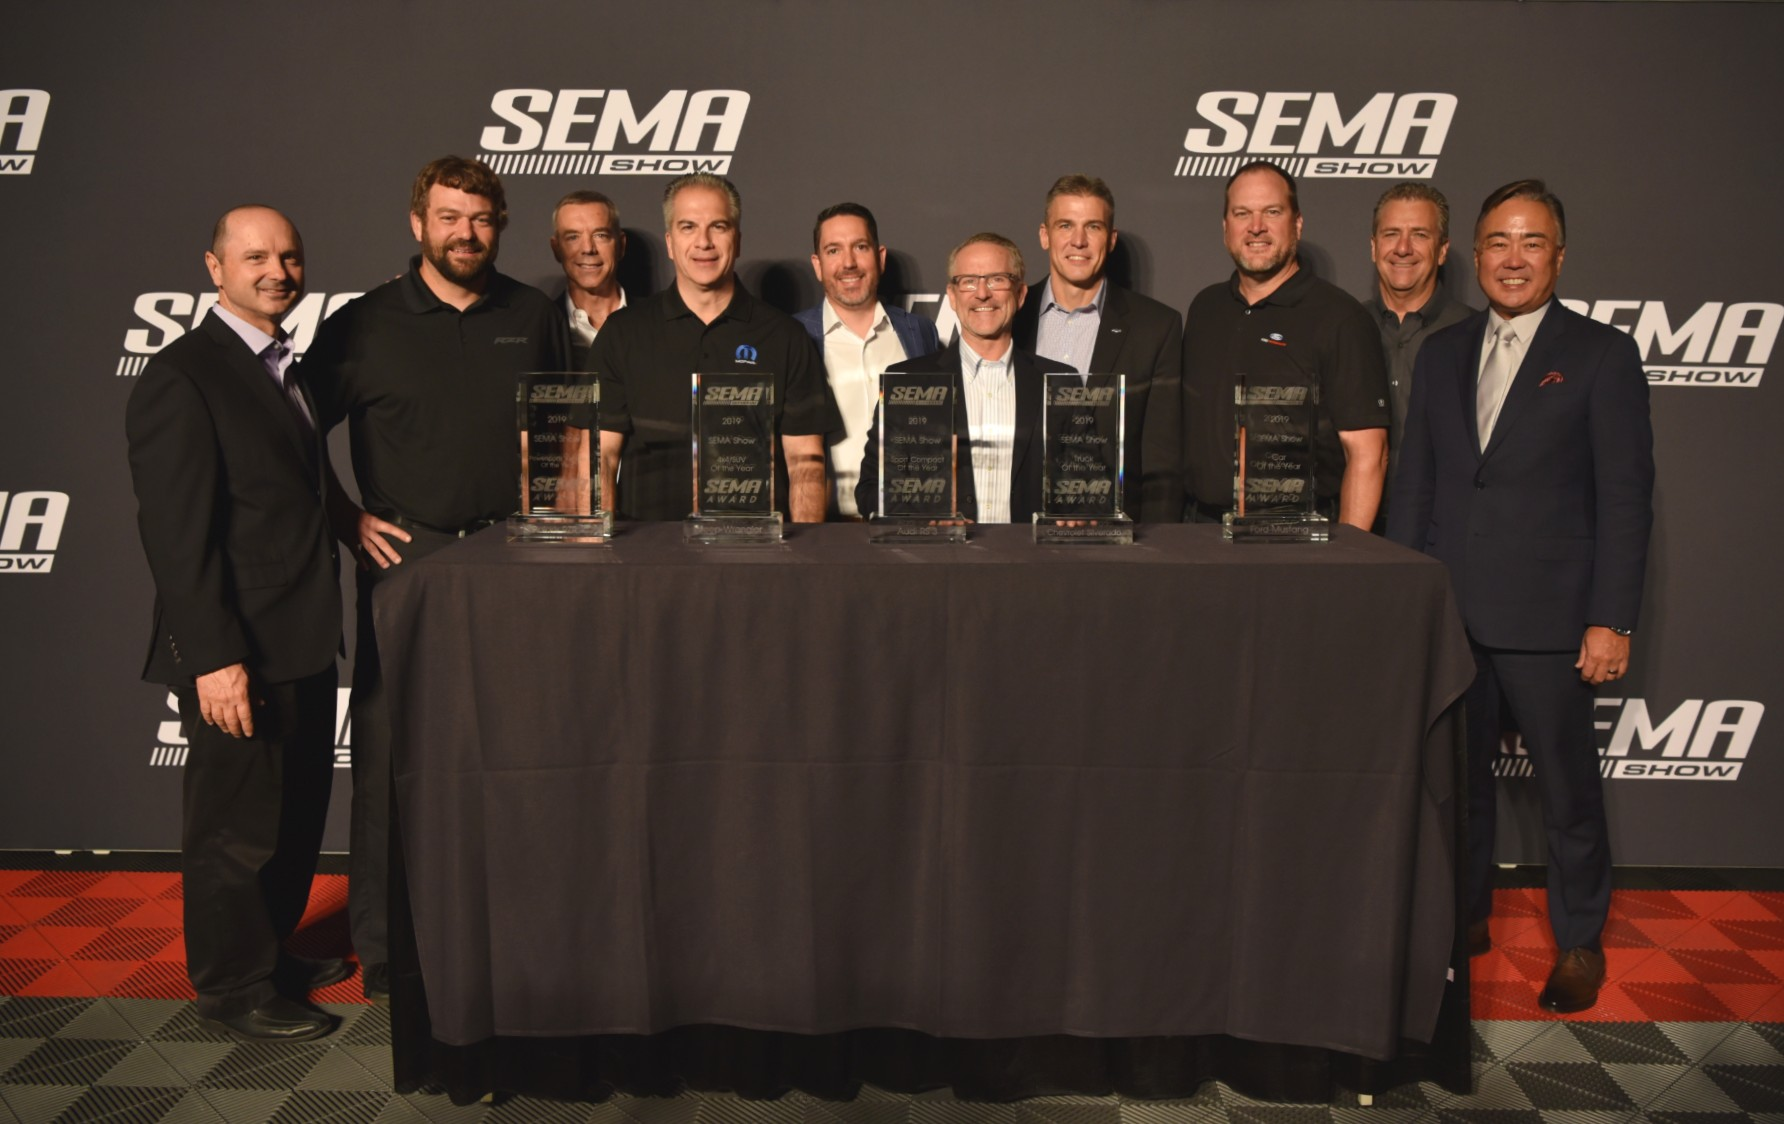 191105 SEMA Announces Vehicles of the Year